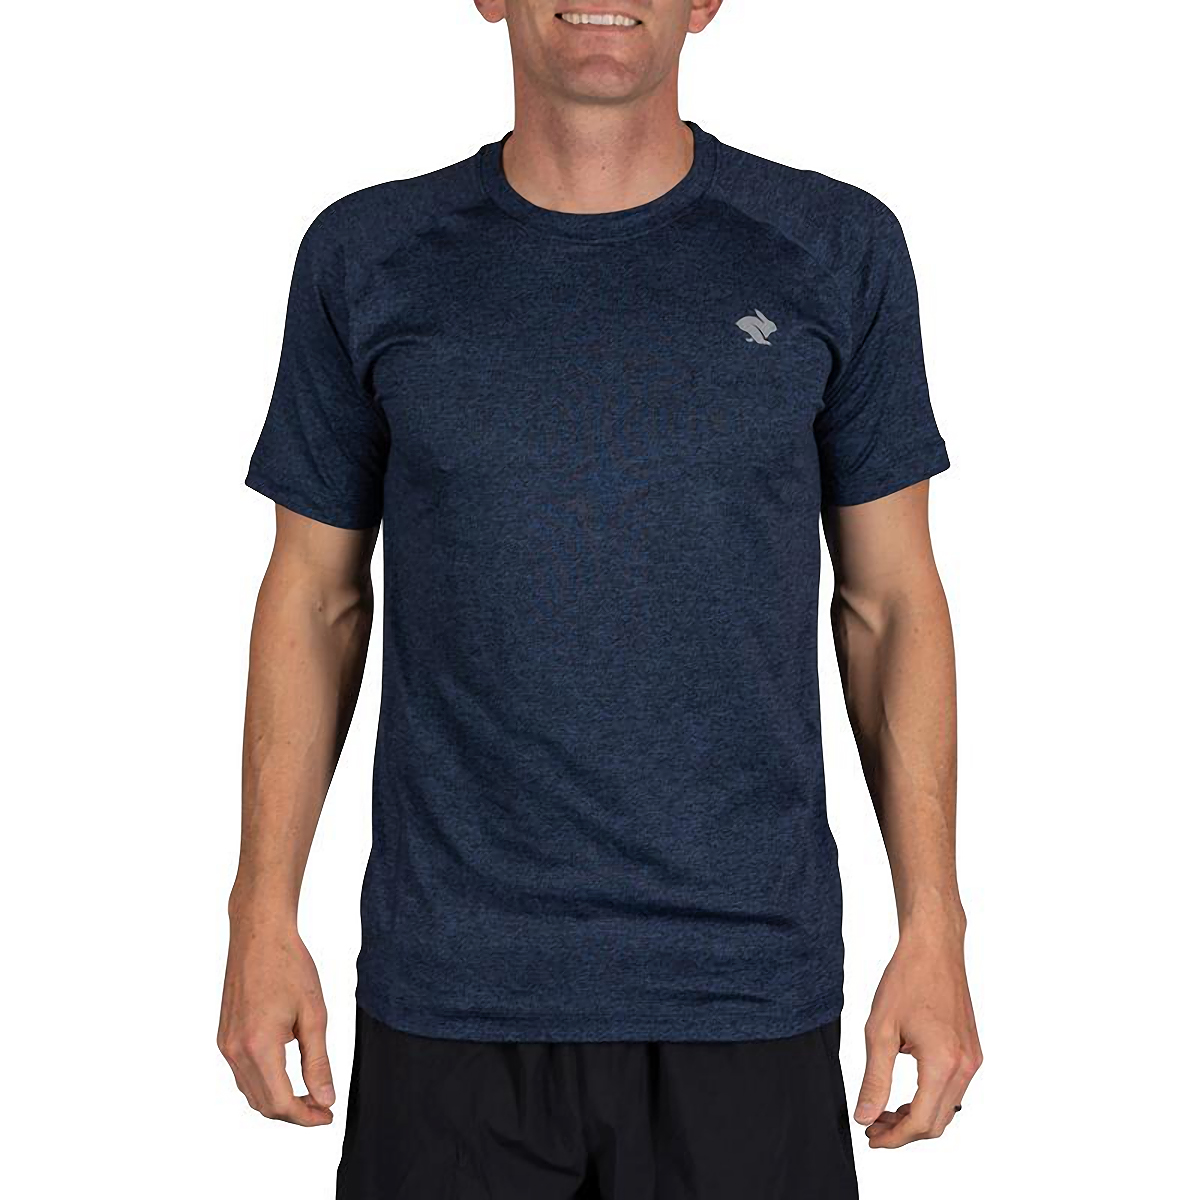 Men's Rabbit EZ Short Sleeve Tee - Color: Eclipse Heather - Size: XS, Eclipse Heather, large, image 1